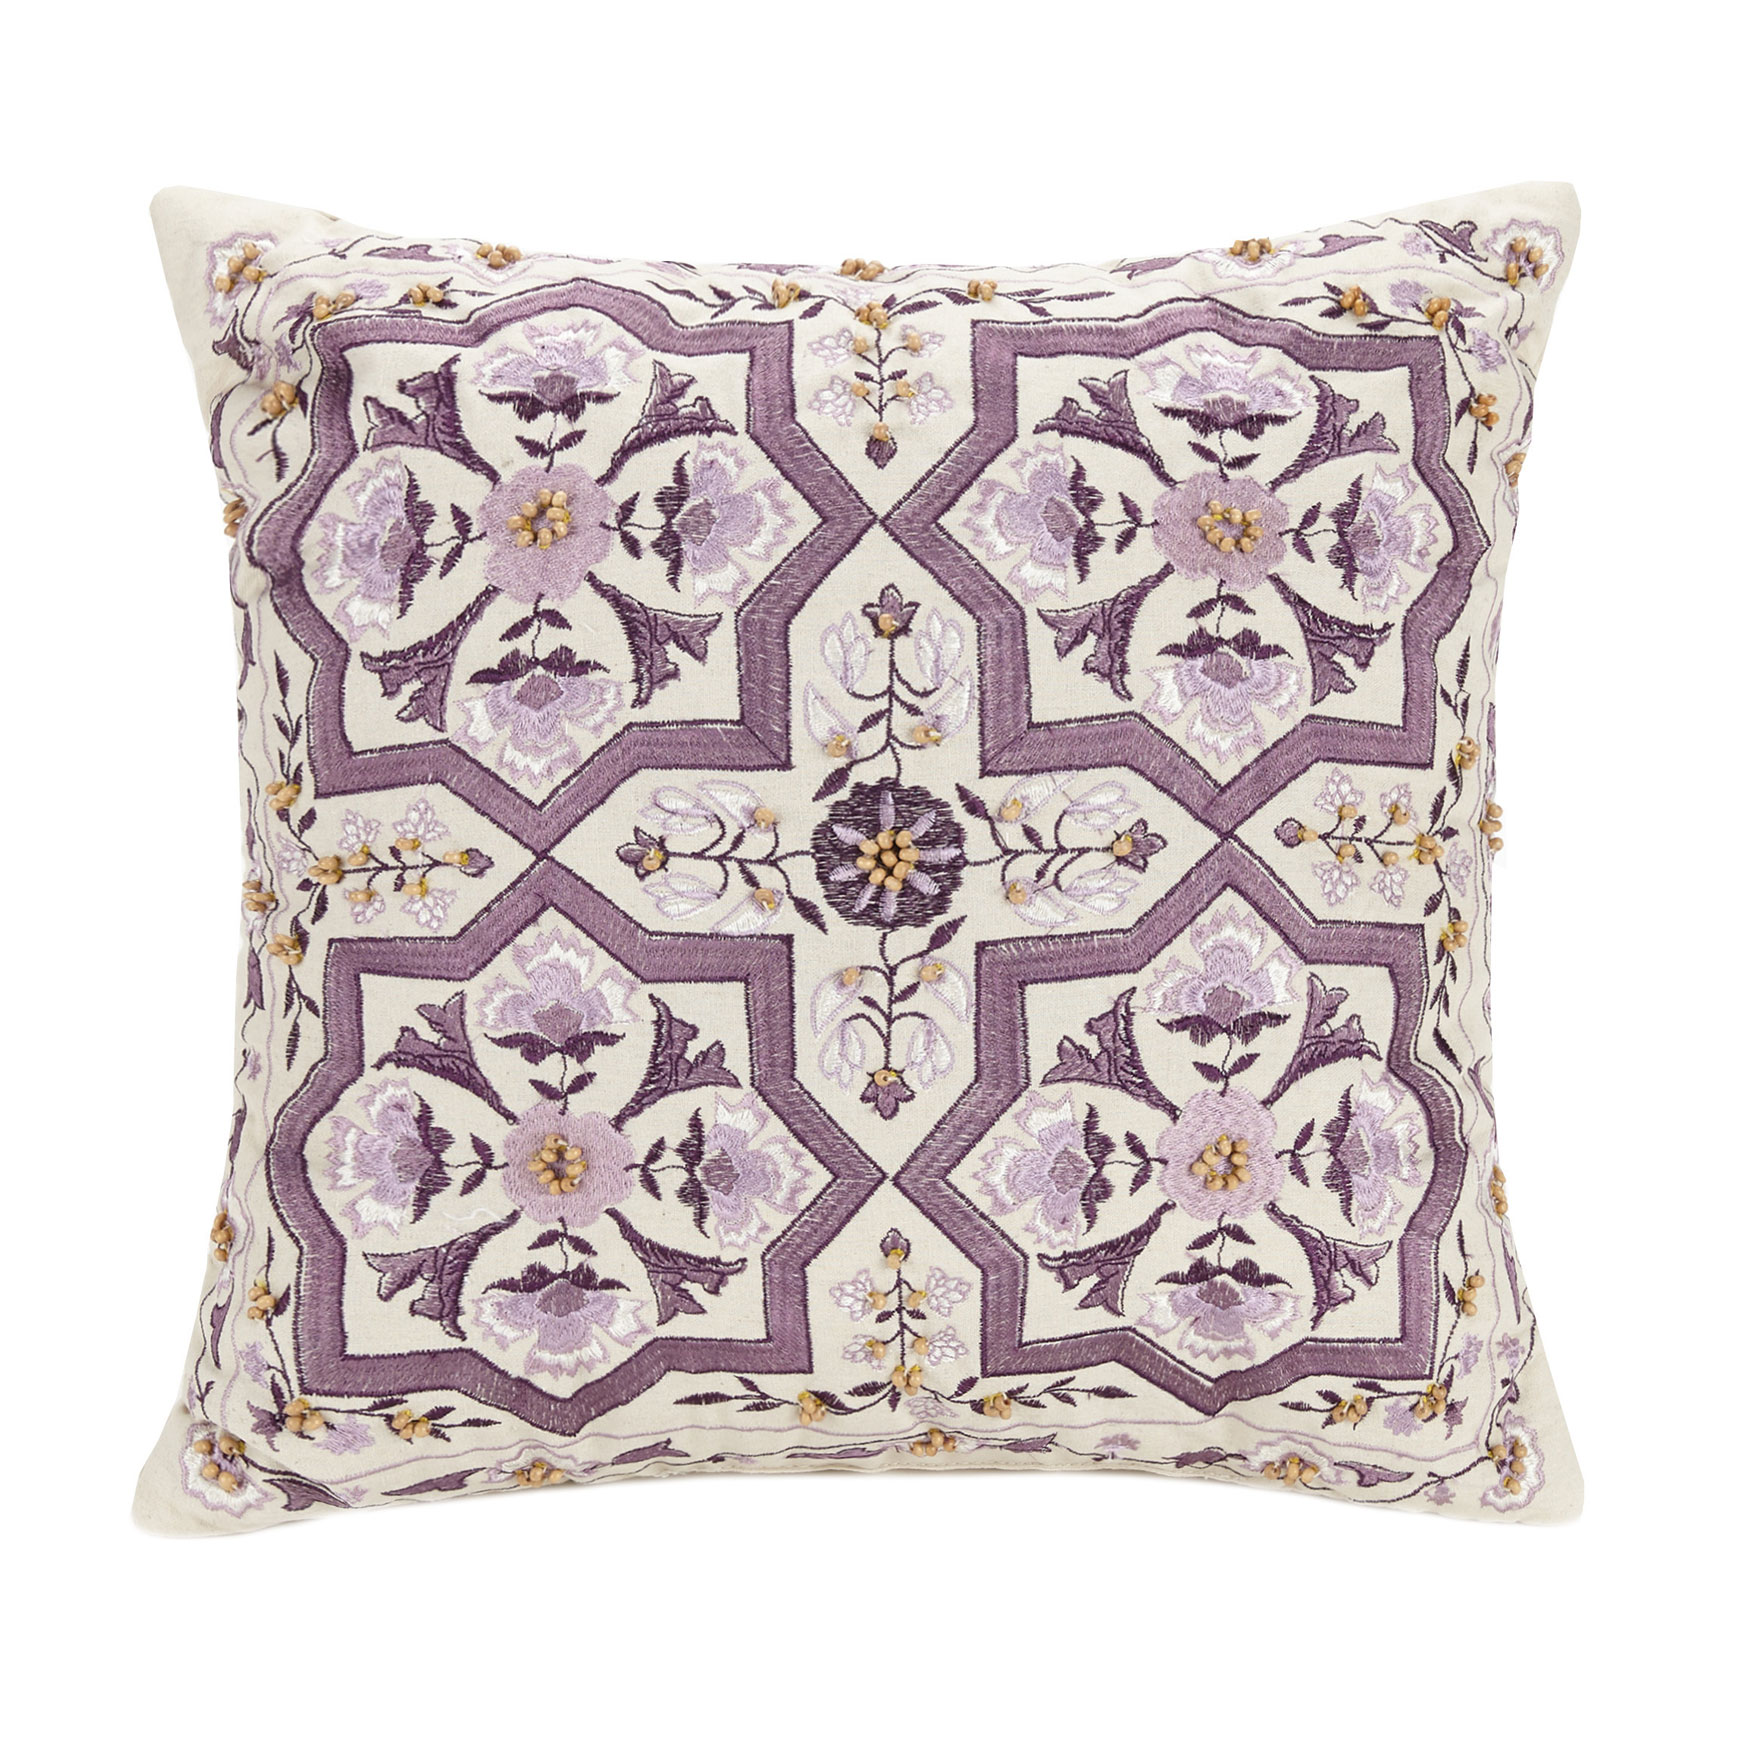 Jessica Simpson Jacky 16' Sq. Beaded Pillow, PURPLE